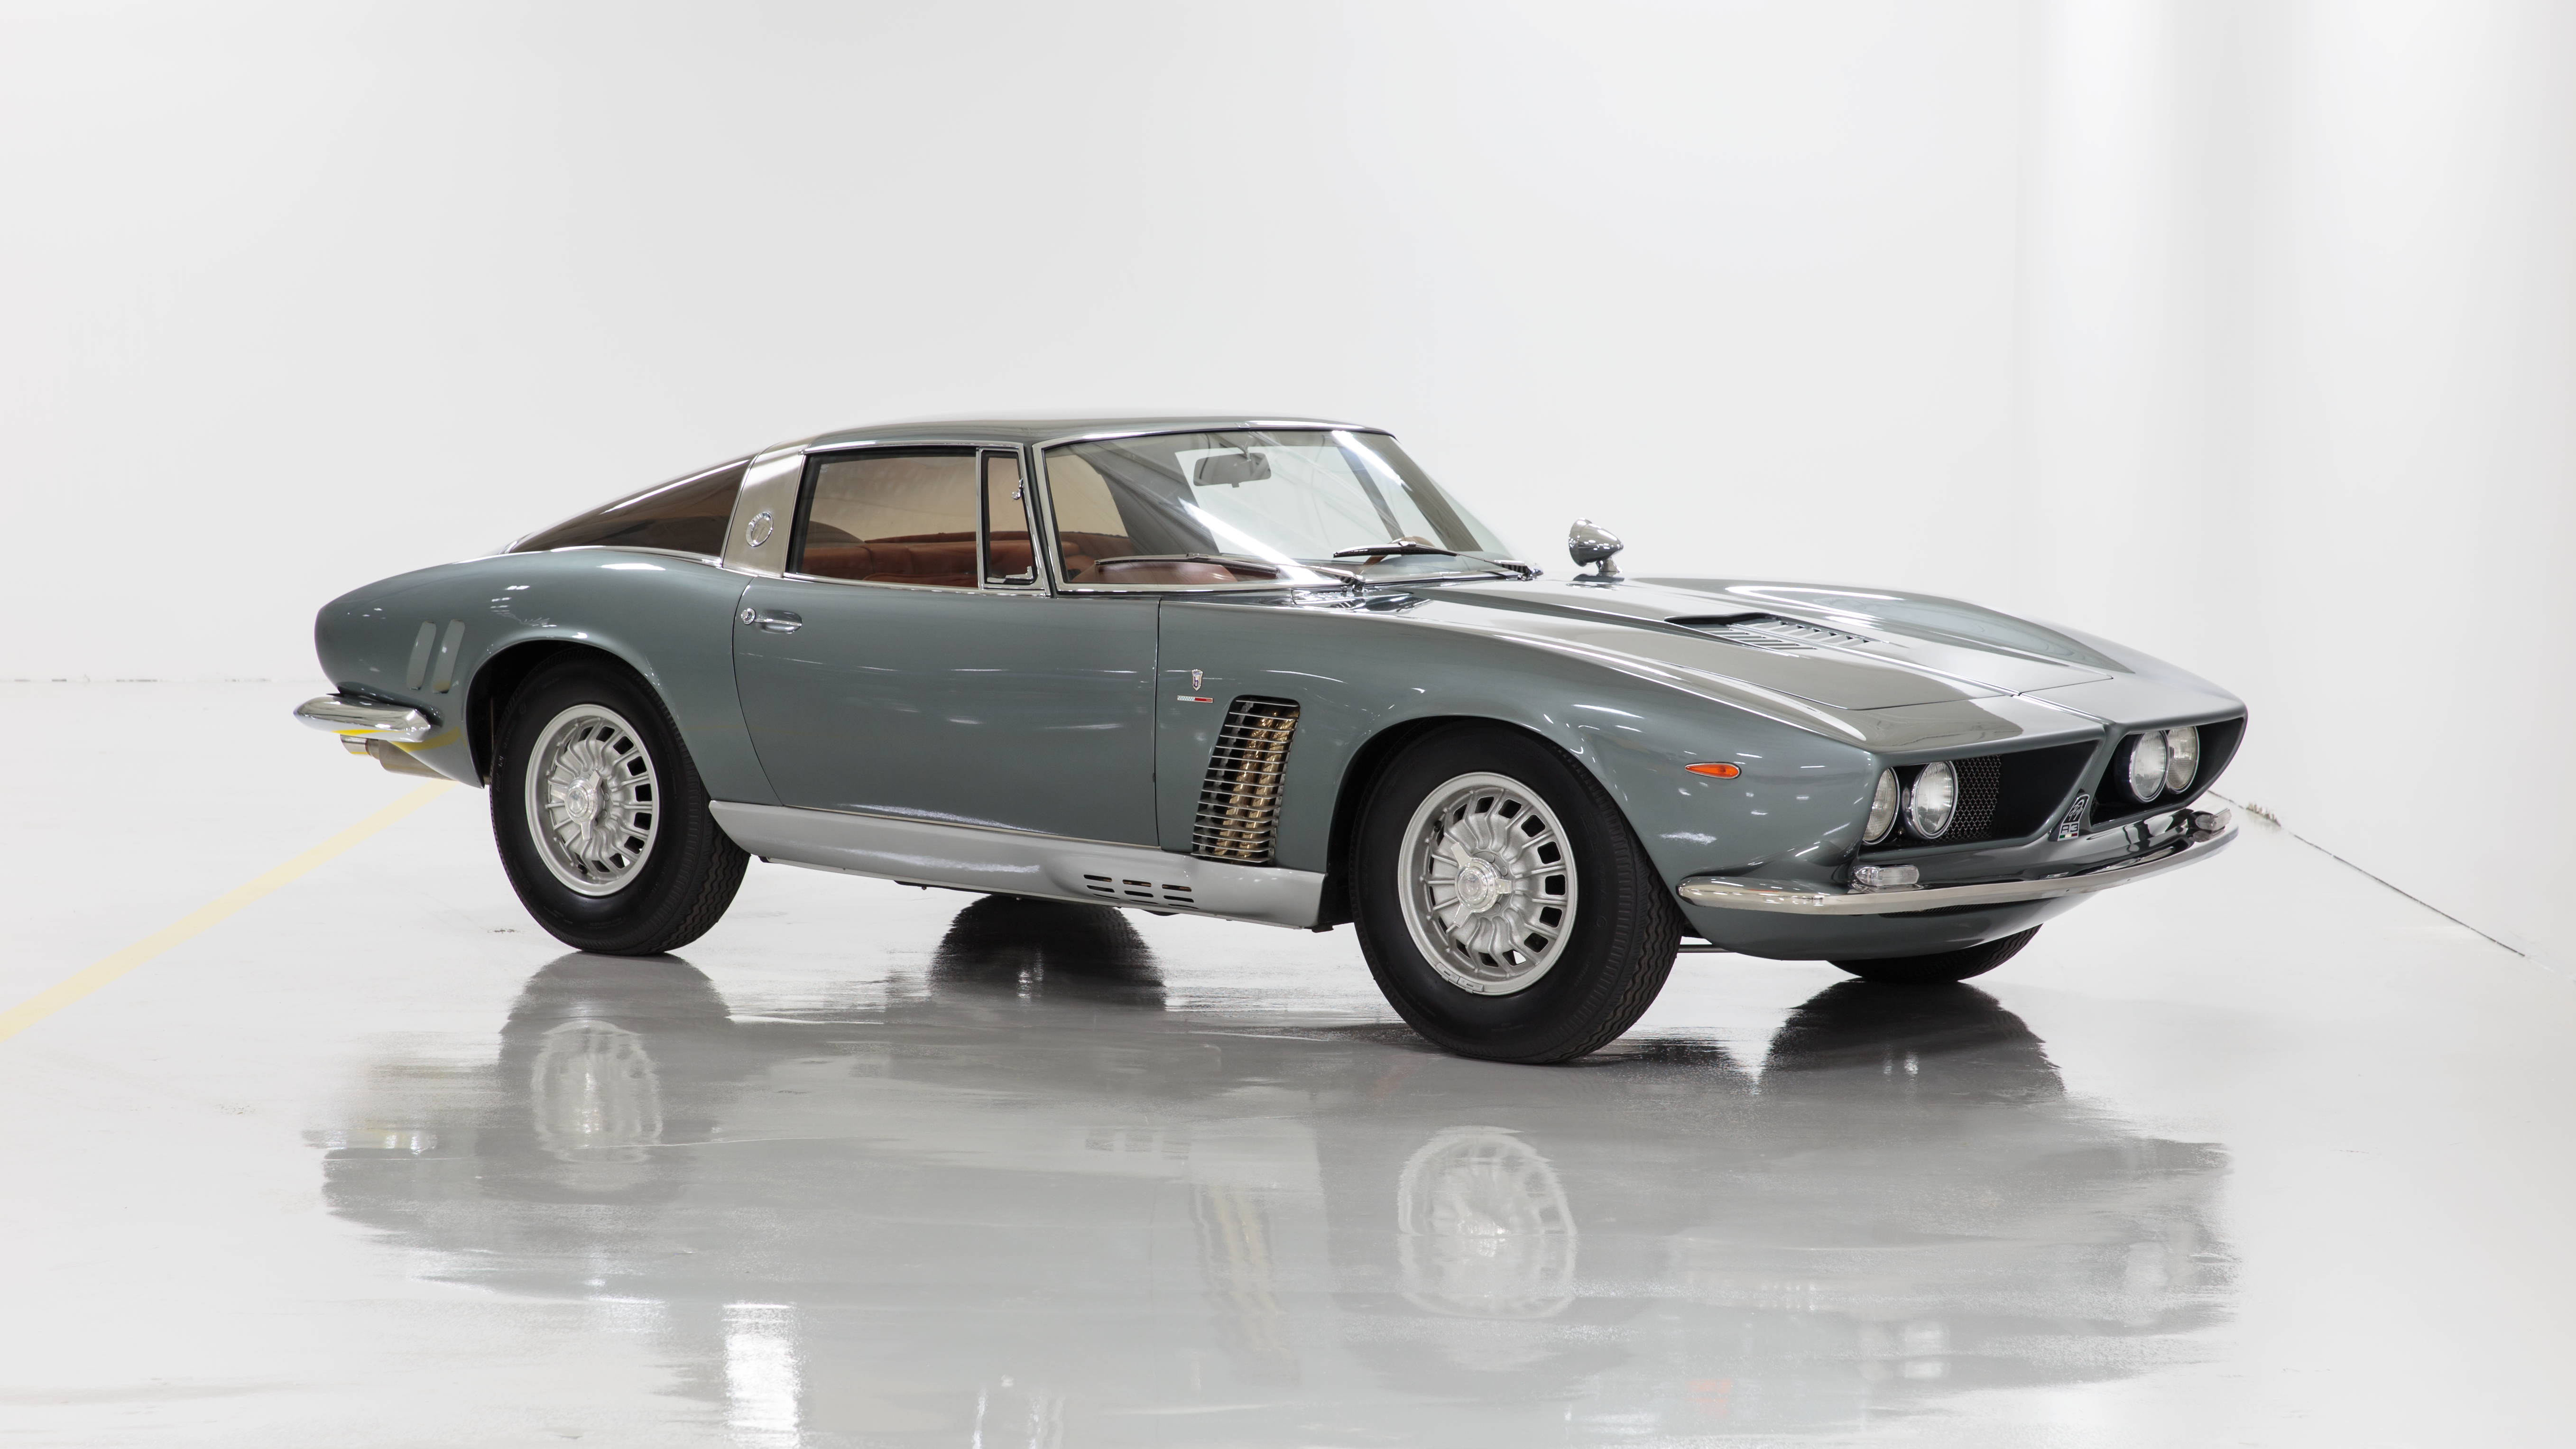 The Iso Grifo was a power- house with a potent stance, able to outrun the fastest cars of its era.